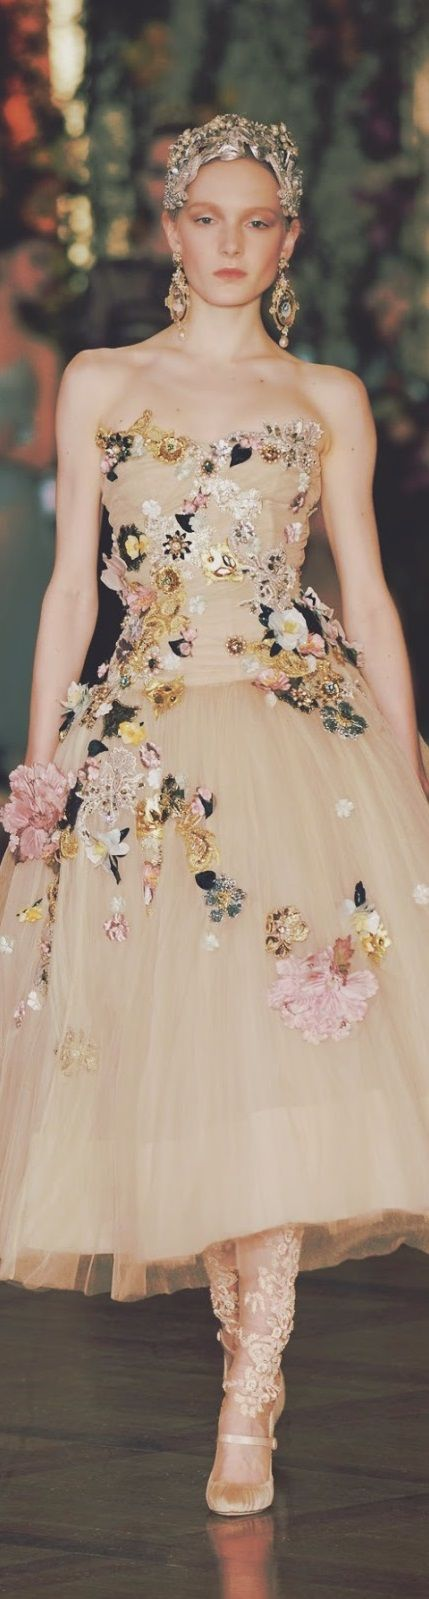 Dolce&Gabbana Spring 2015 Couture